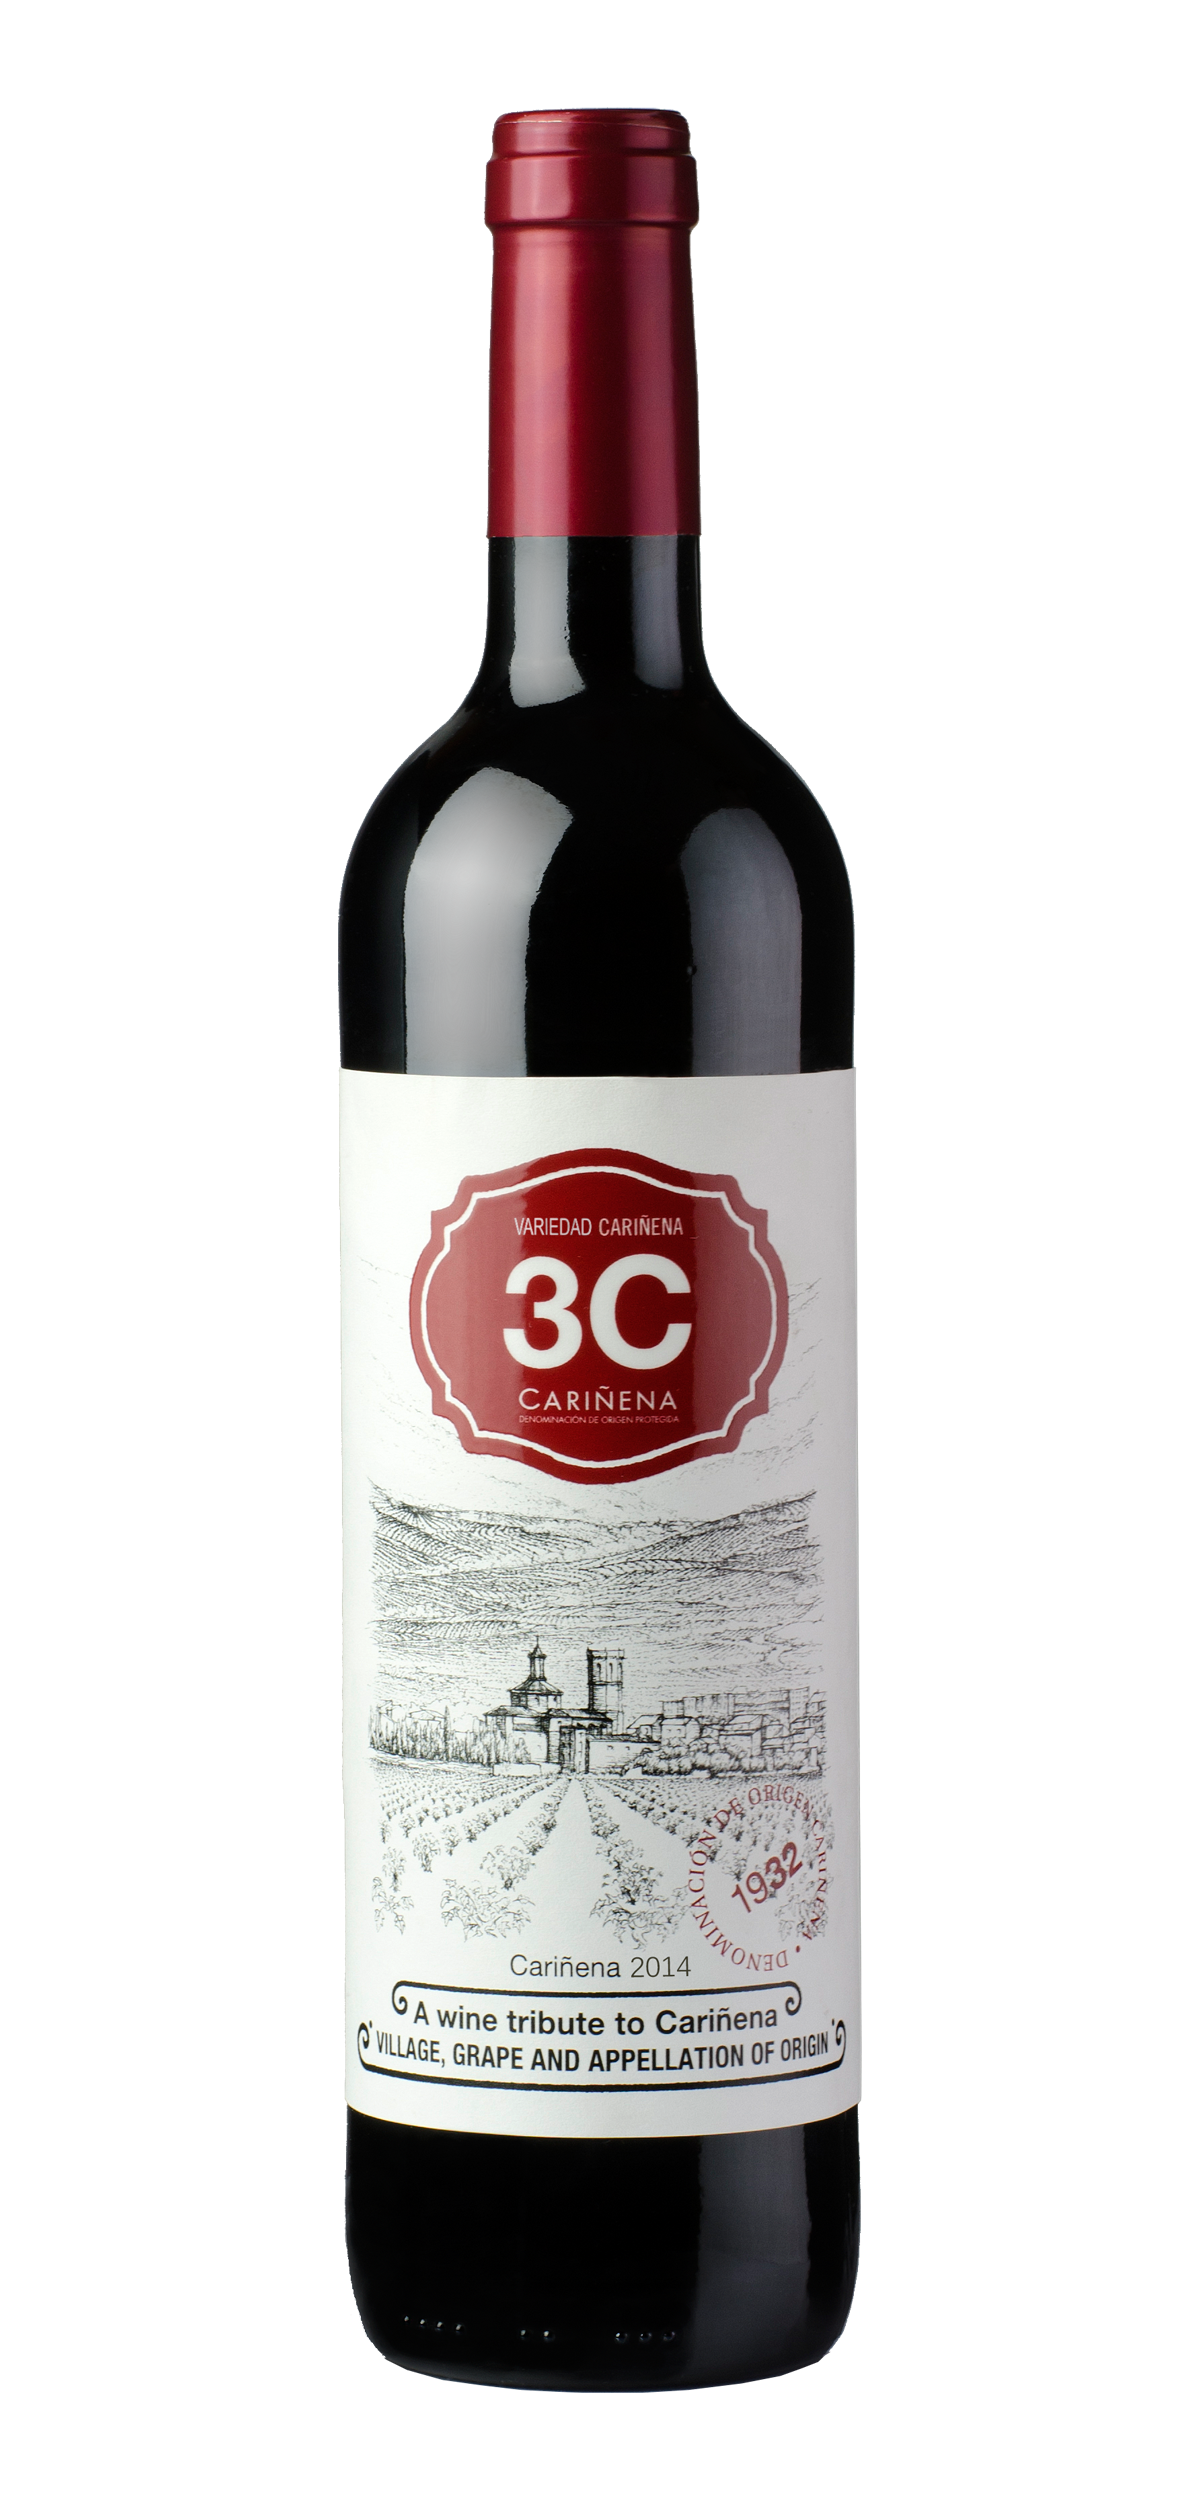 3C Young wine bottle design